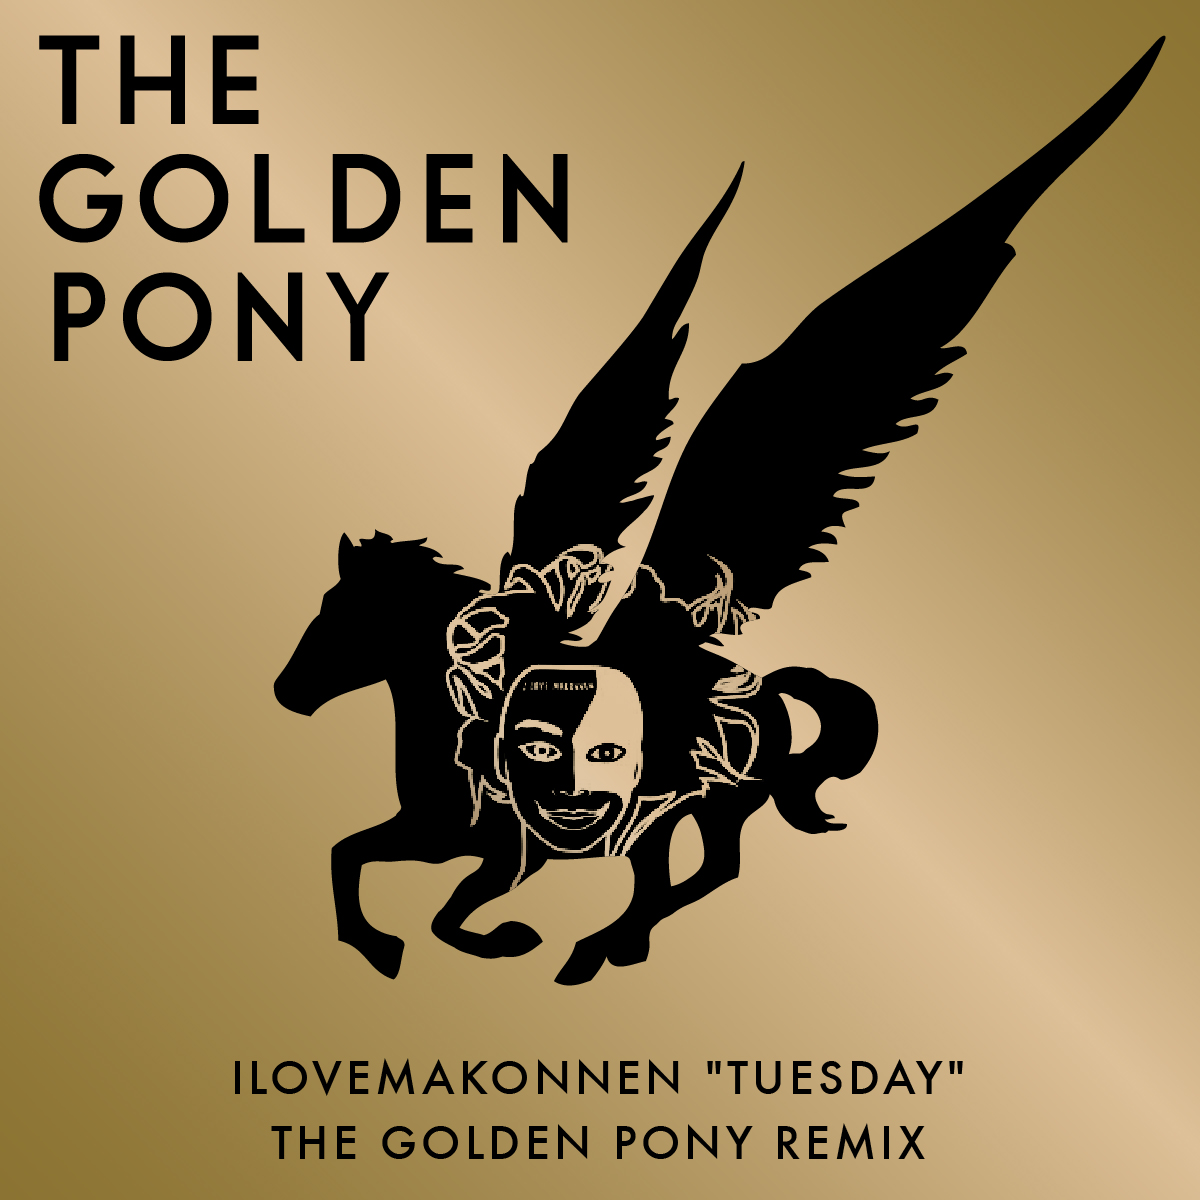 The Golden Pony